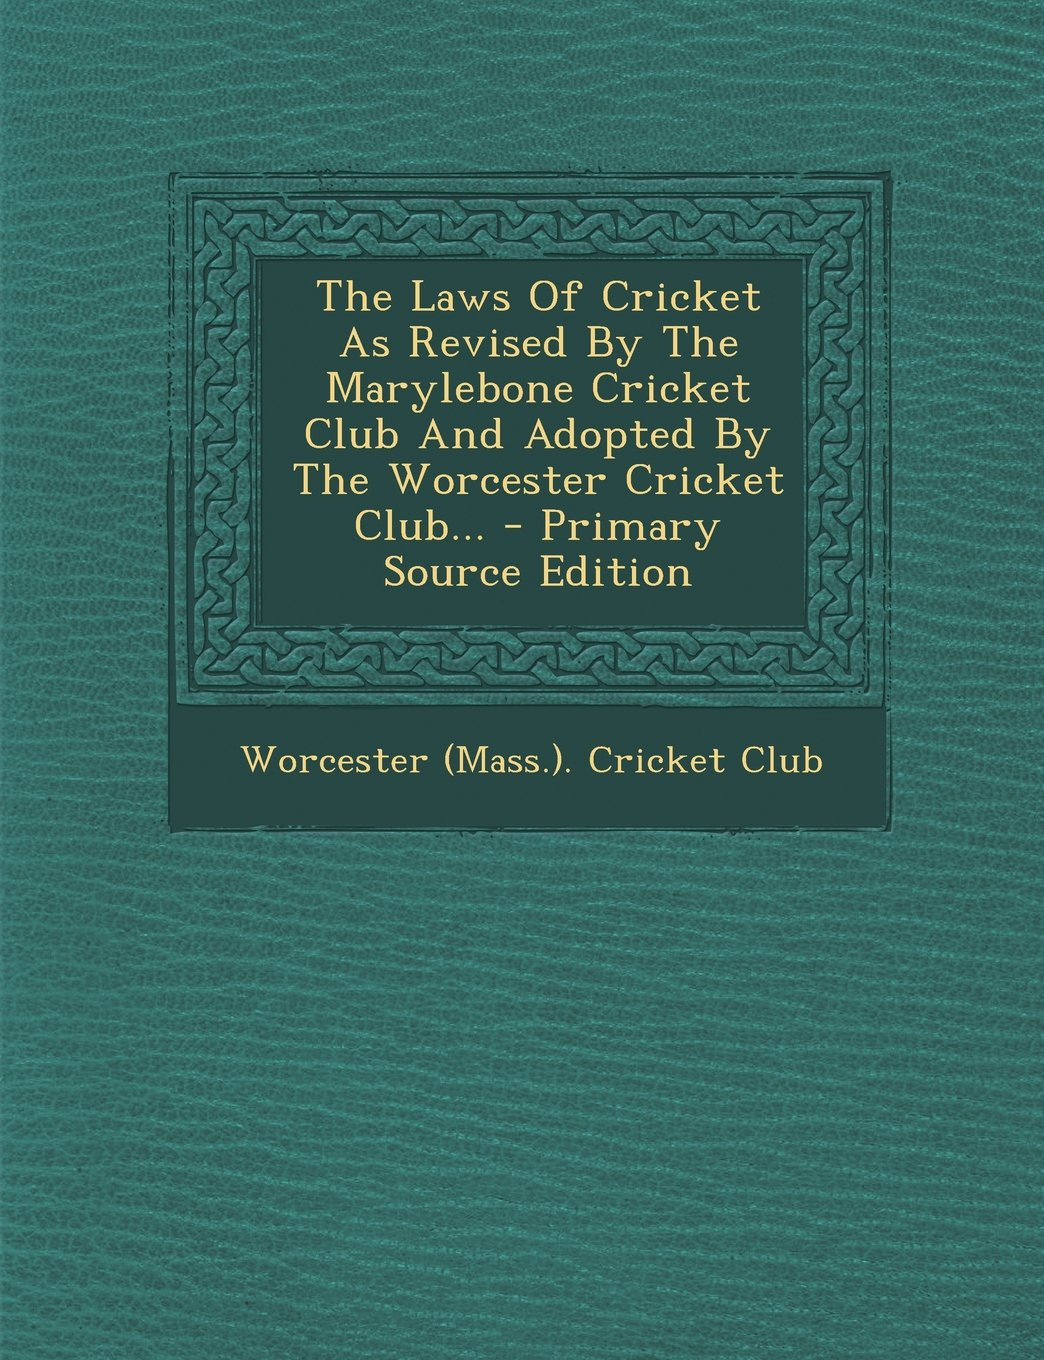 Read Online The Laws Of Cricket As Revised By The Marylebone Cricket Club And Adopted By The Worcester Cricket Club... pdf epub